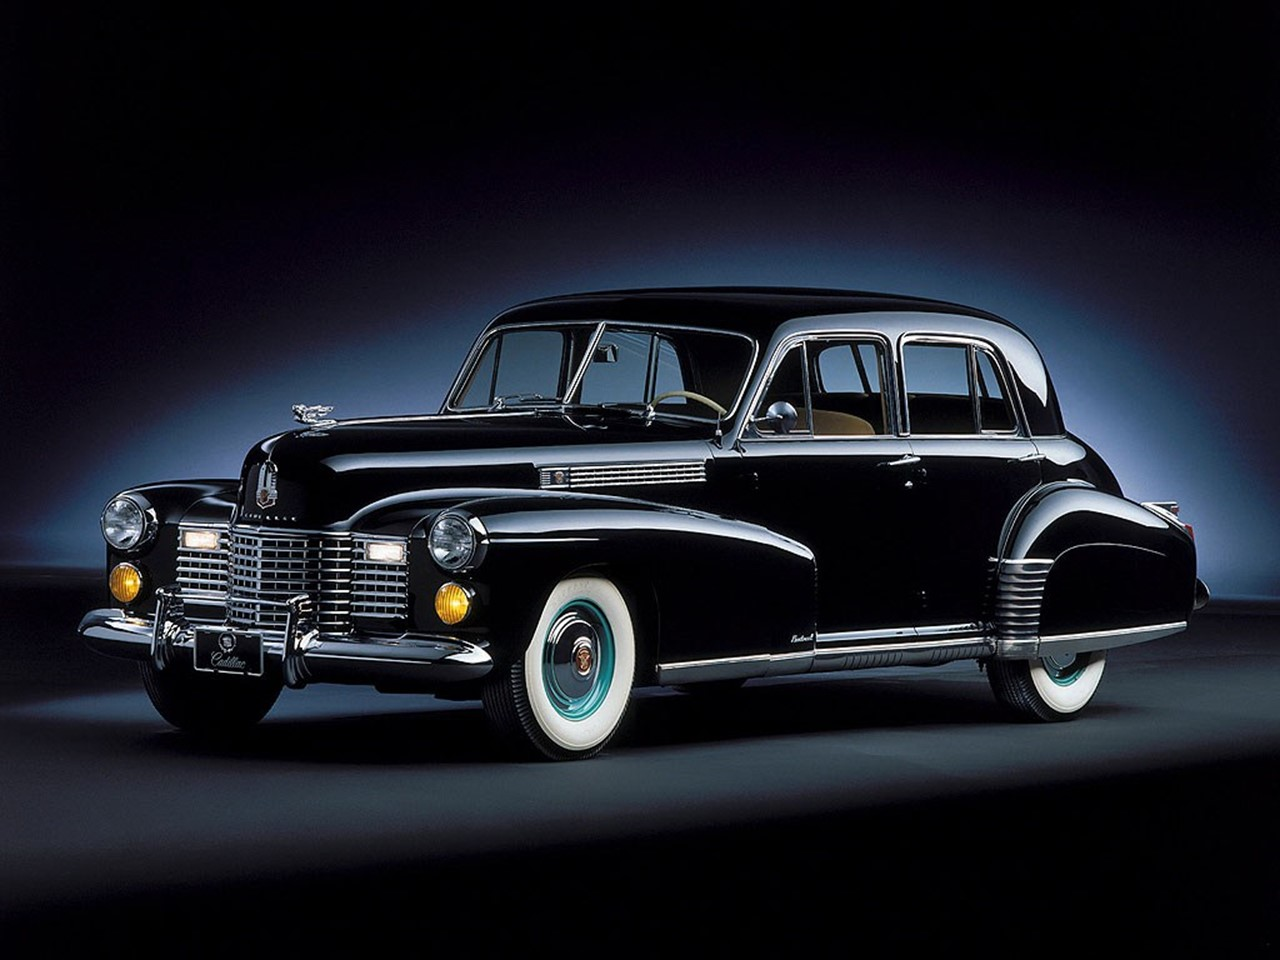 1941 Fleetwood Series Sixty-Special